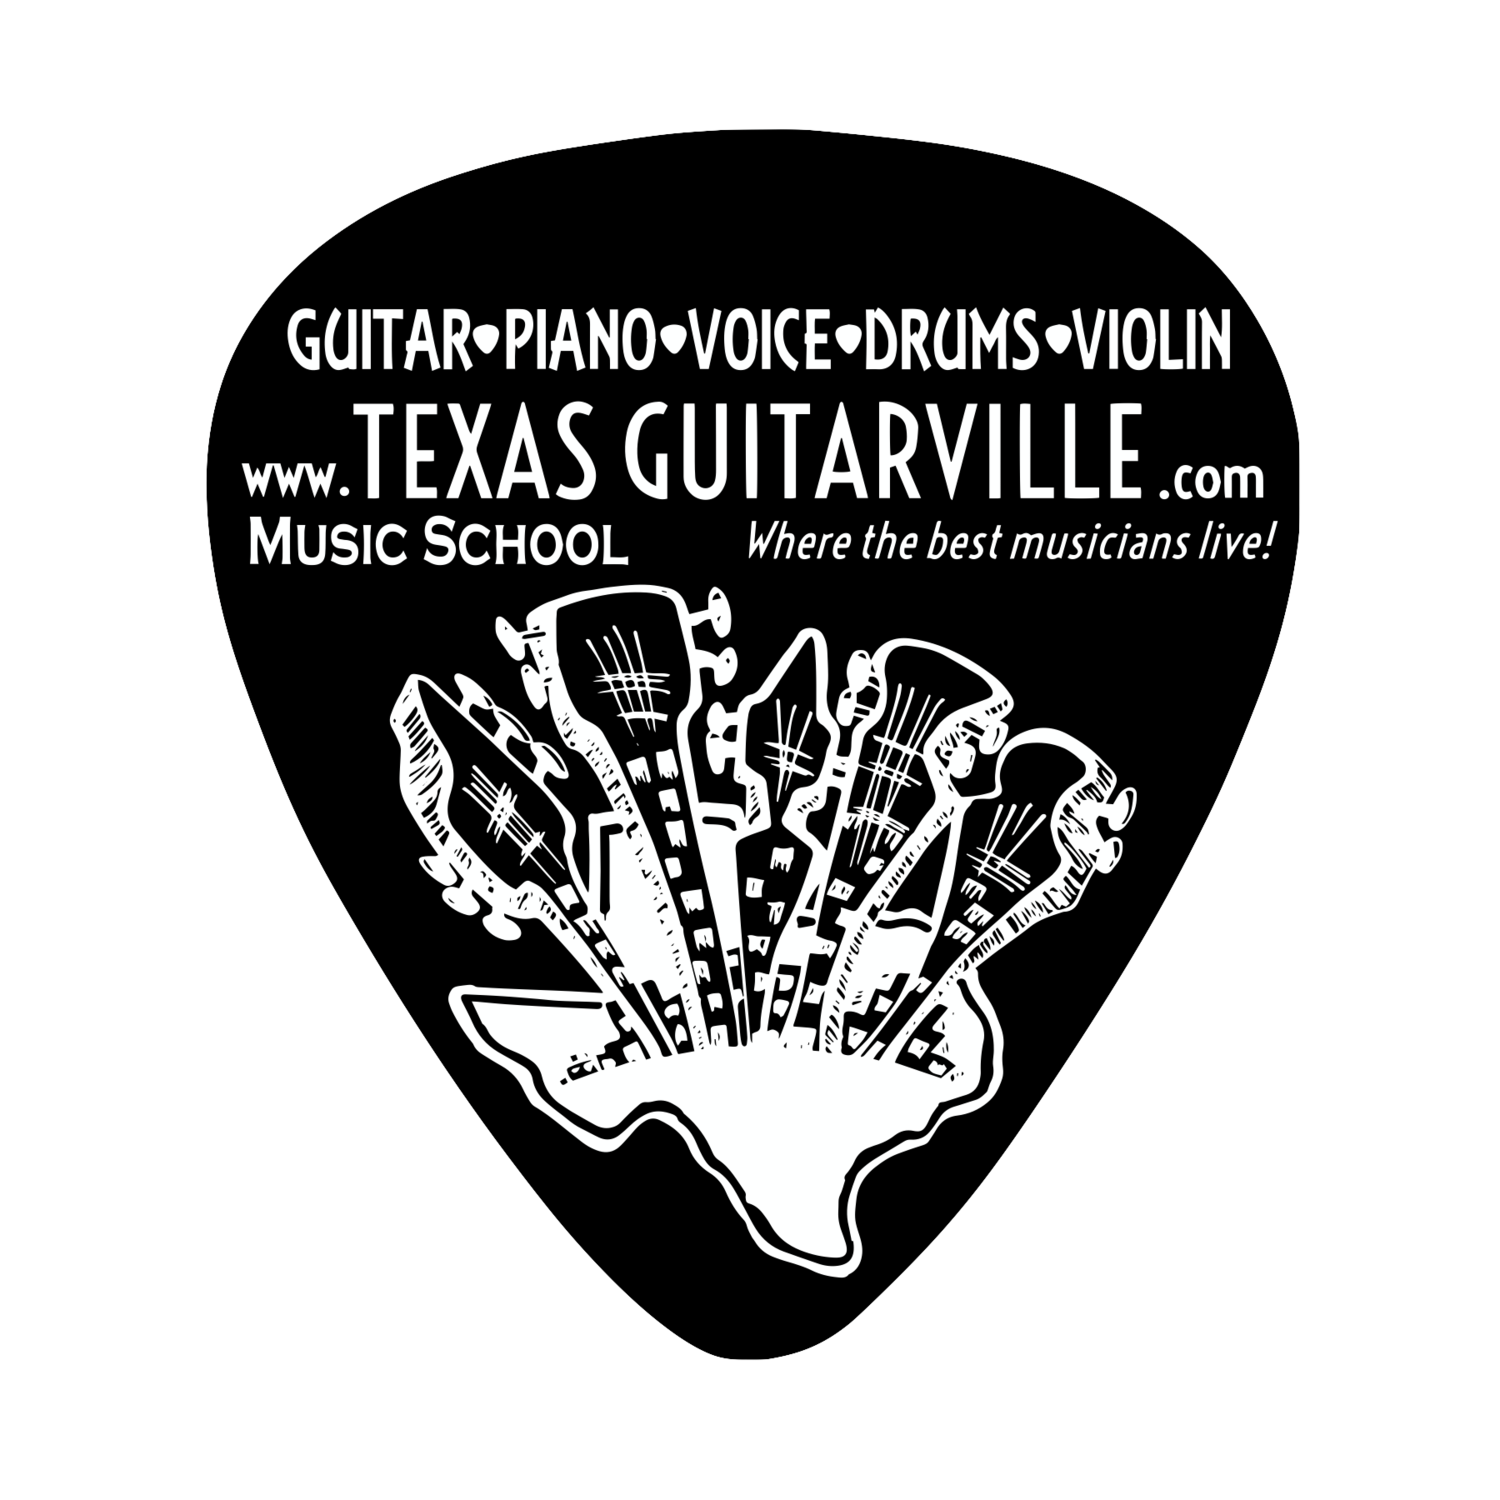 TEXAS GUITARVILLE Music Schools in Keller|Flower Mound|Haslet|Guitar Lessons|Piano Lessons|Voice Lesson